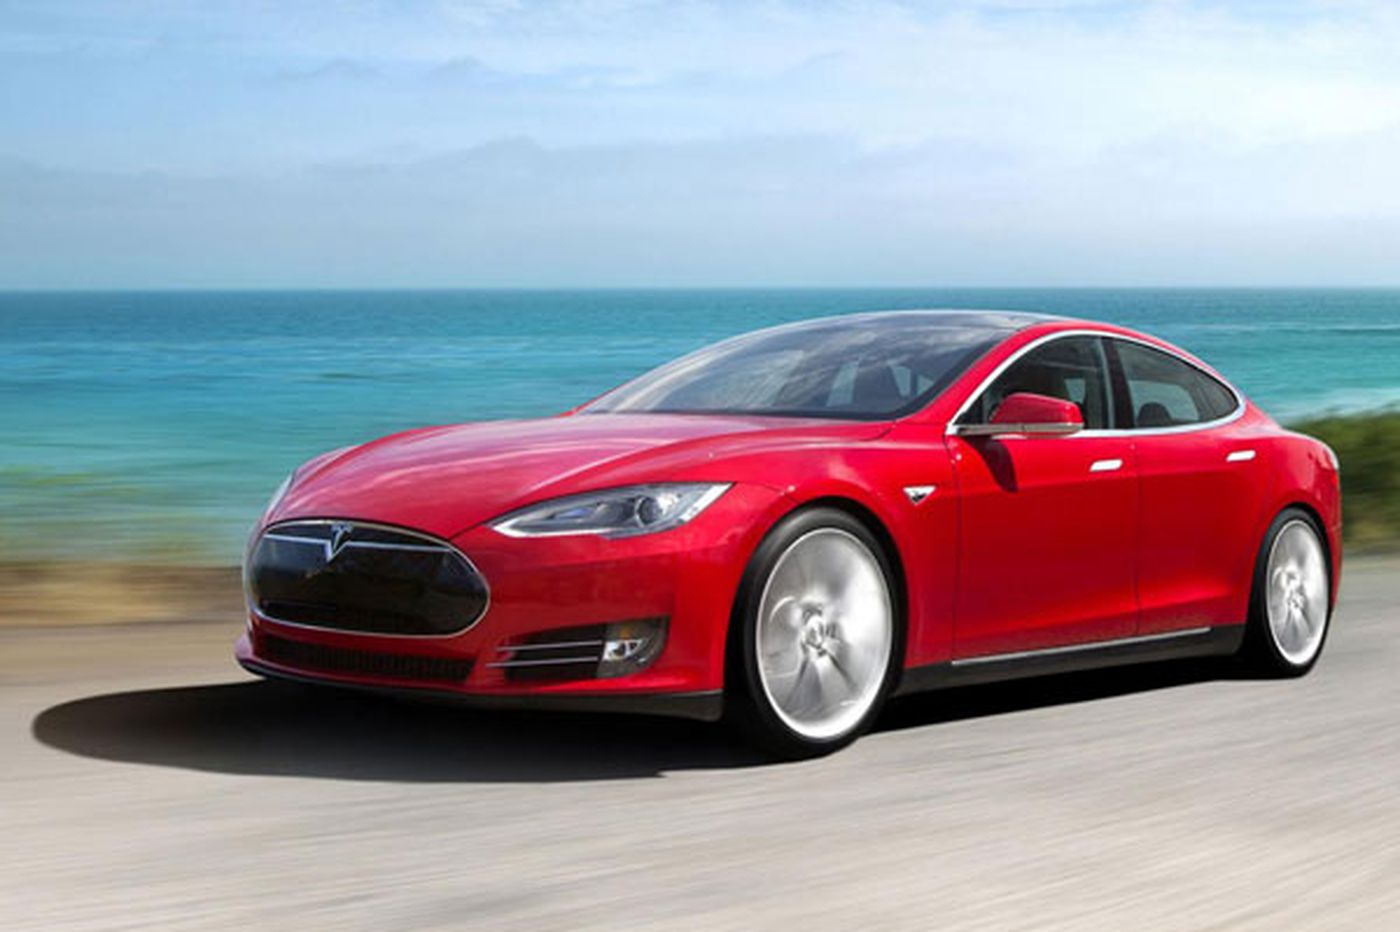 Tesla Motors Elon Musk Plans To Build Cars That Fly And Swim